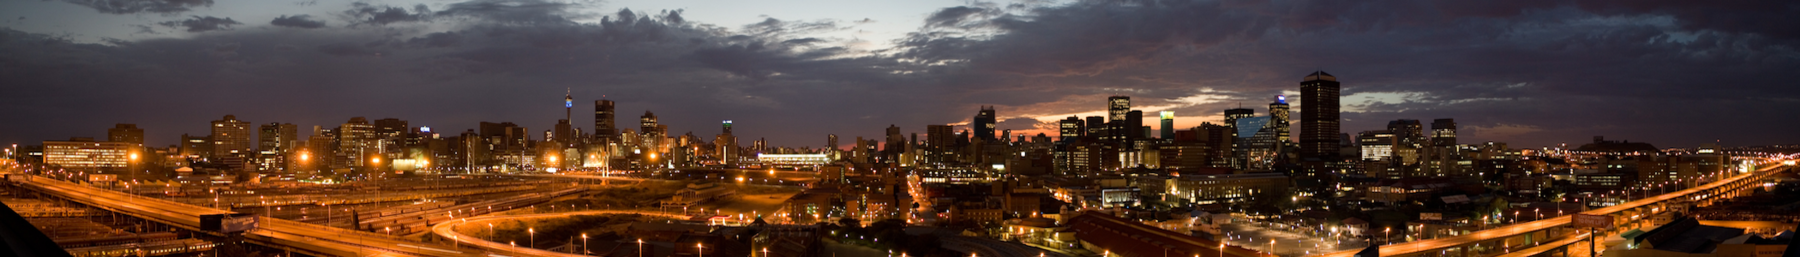 Johannesburg banner City lights.png